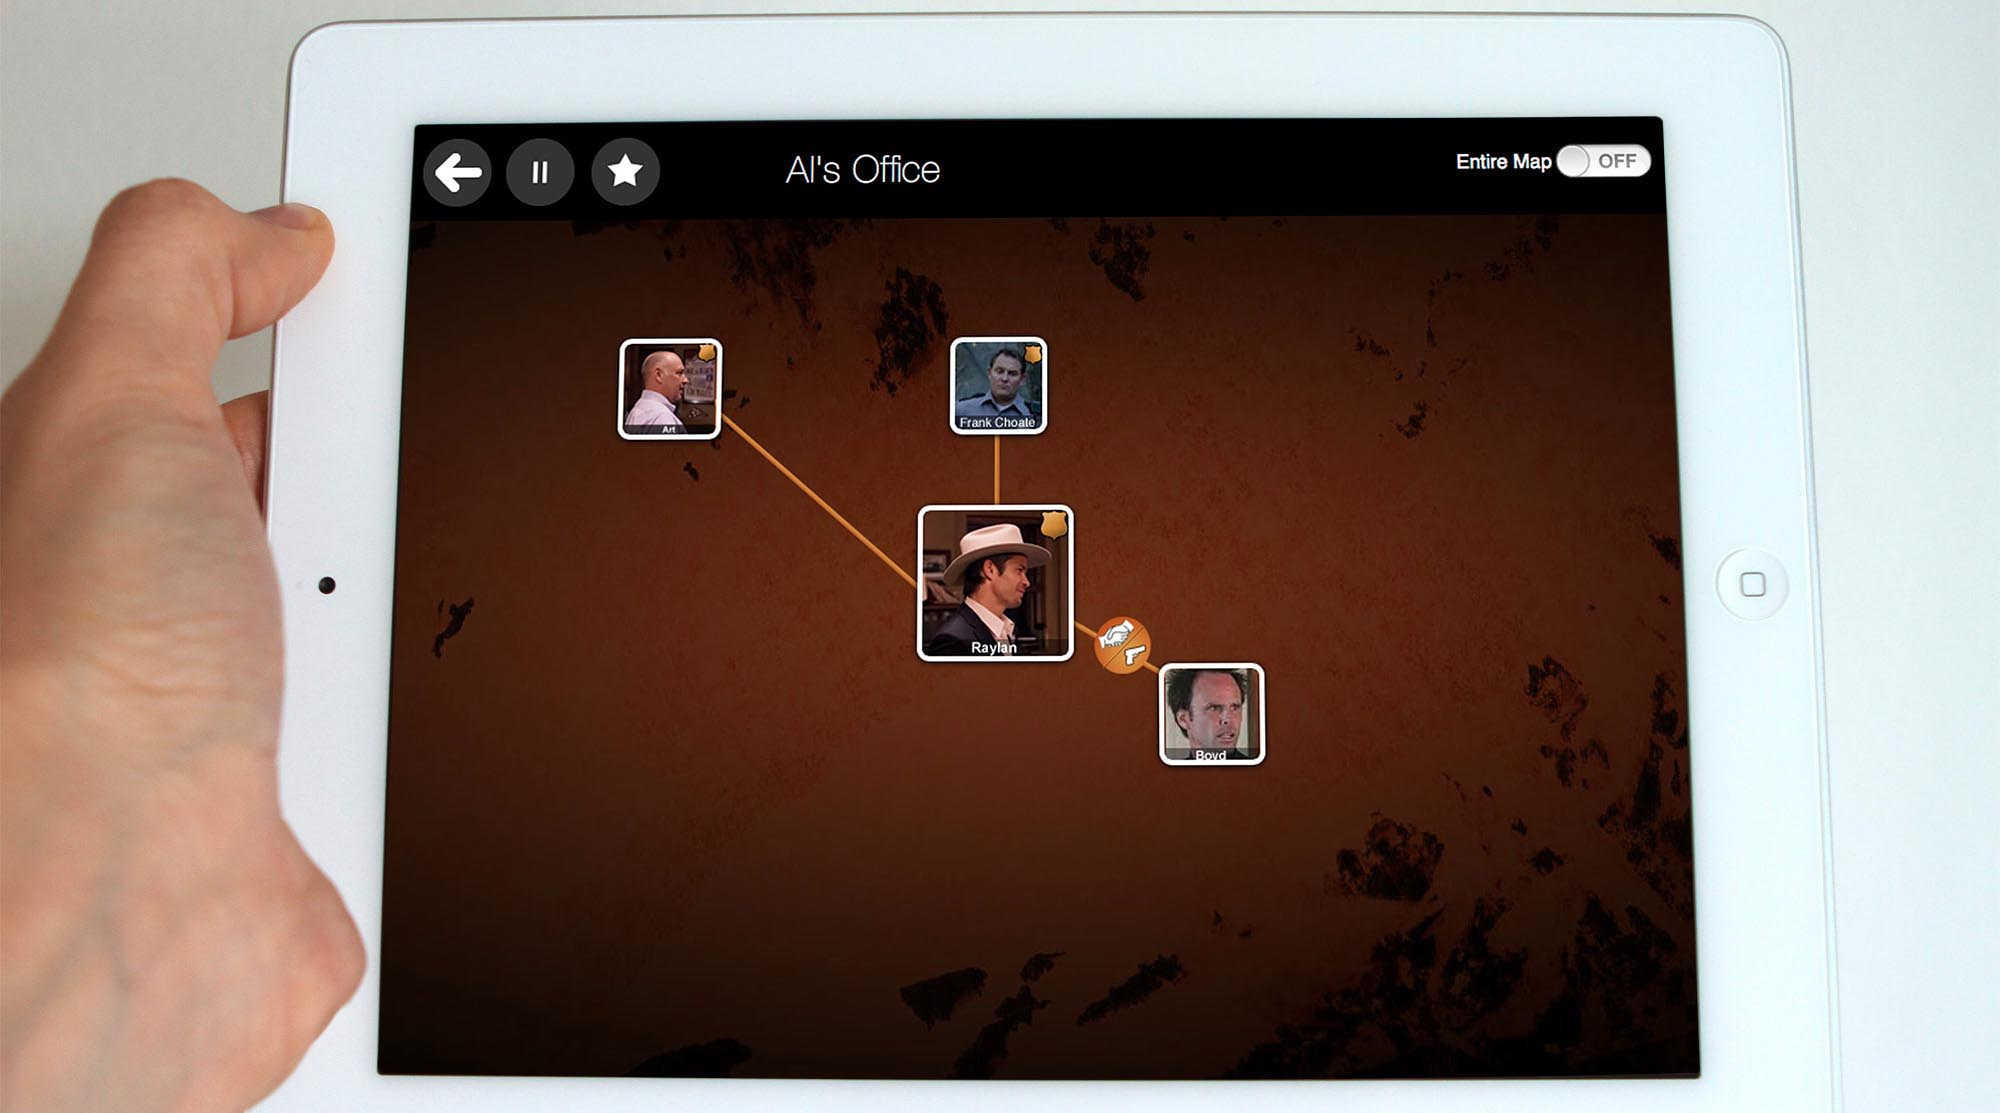 Using the affordances of the digital medium we can create navigation patterns and auxiliary information streams to minimize confusion and maximize immersion in the story world. In our application, the iPad is used as a secondary screen to create a character map synchronized with the TV content, and to support navigation of story threads across episodes.